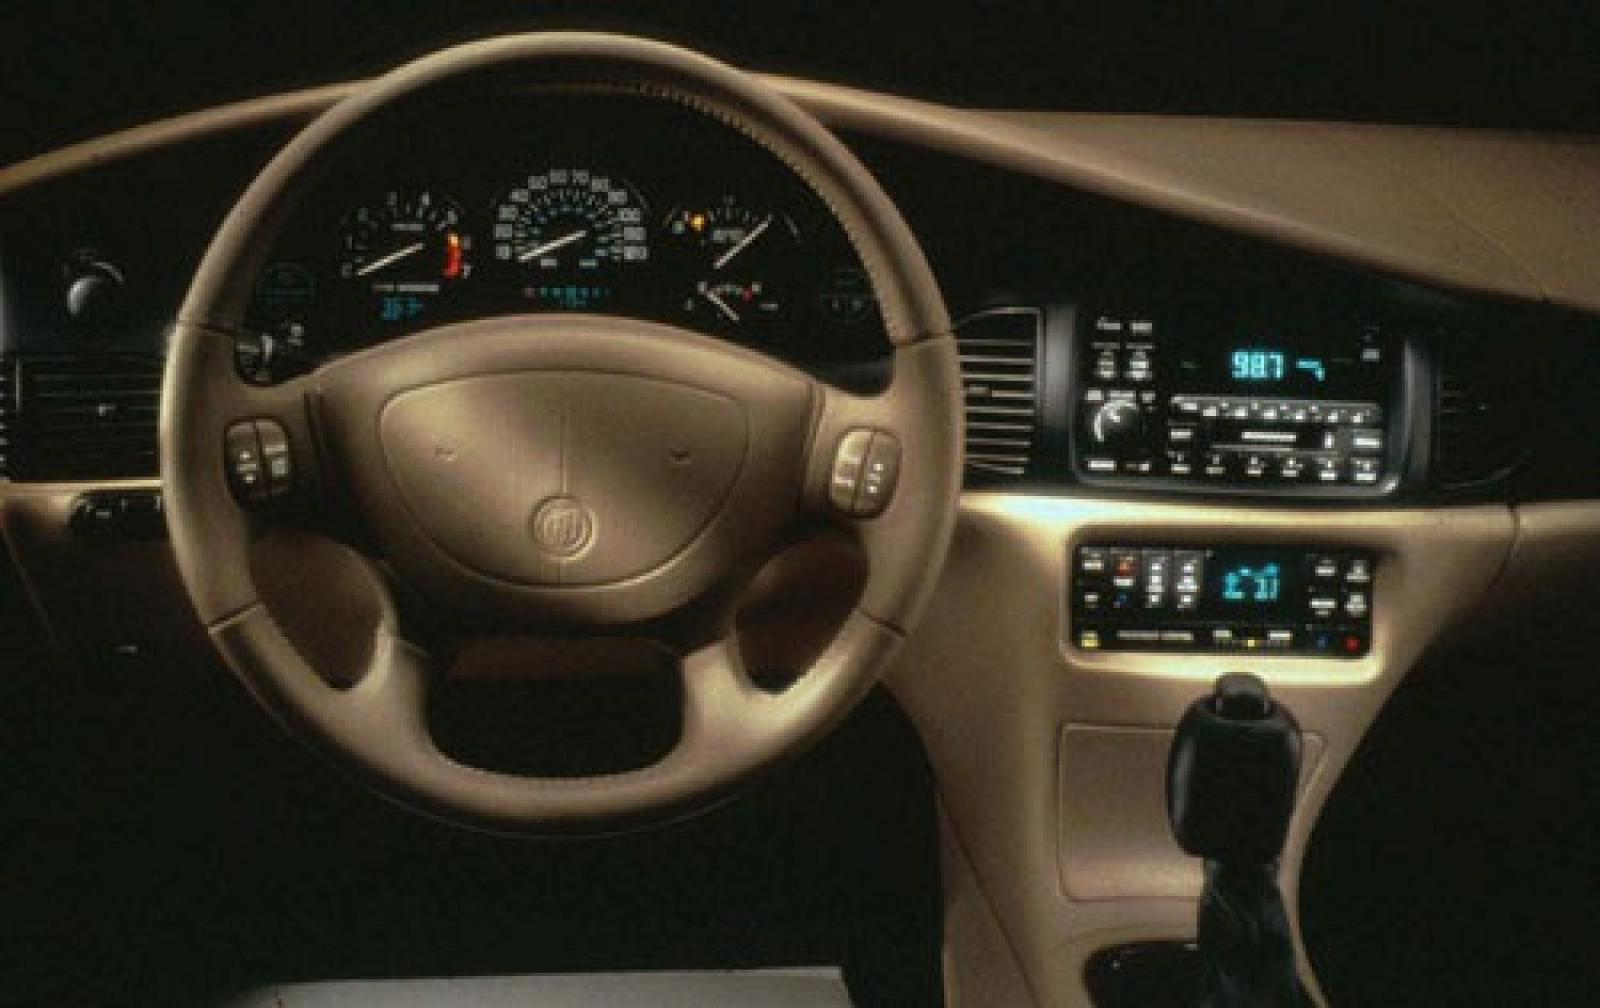 2000 buick regal information and photos neo drive neo drive